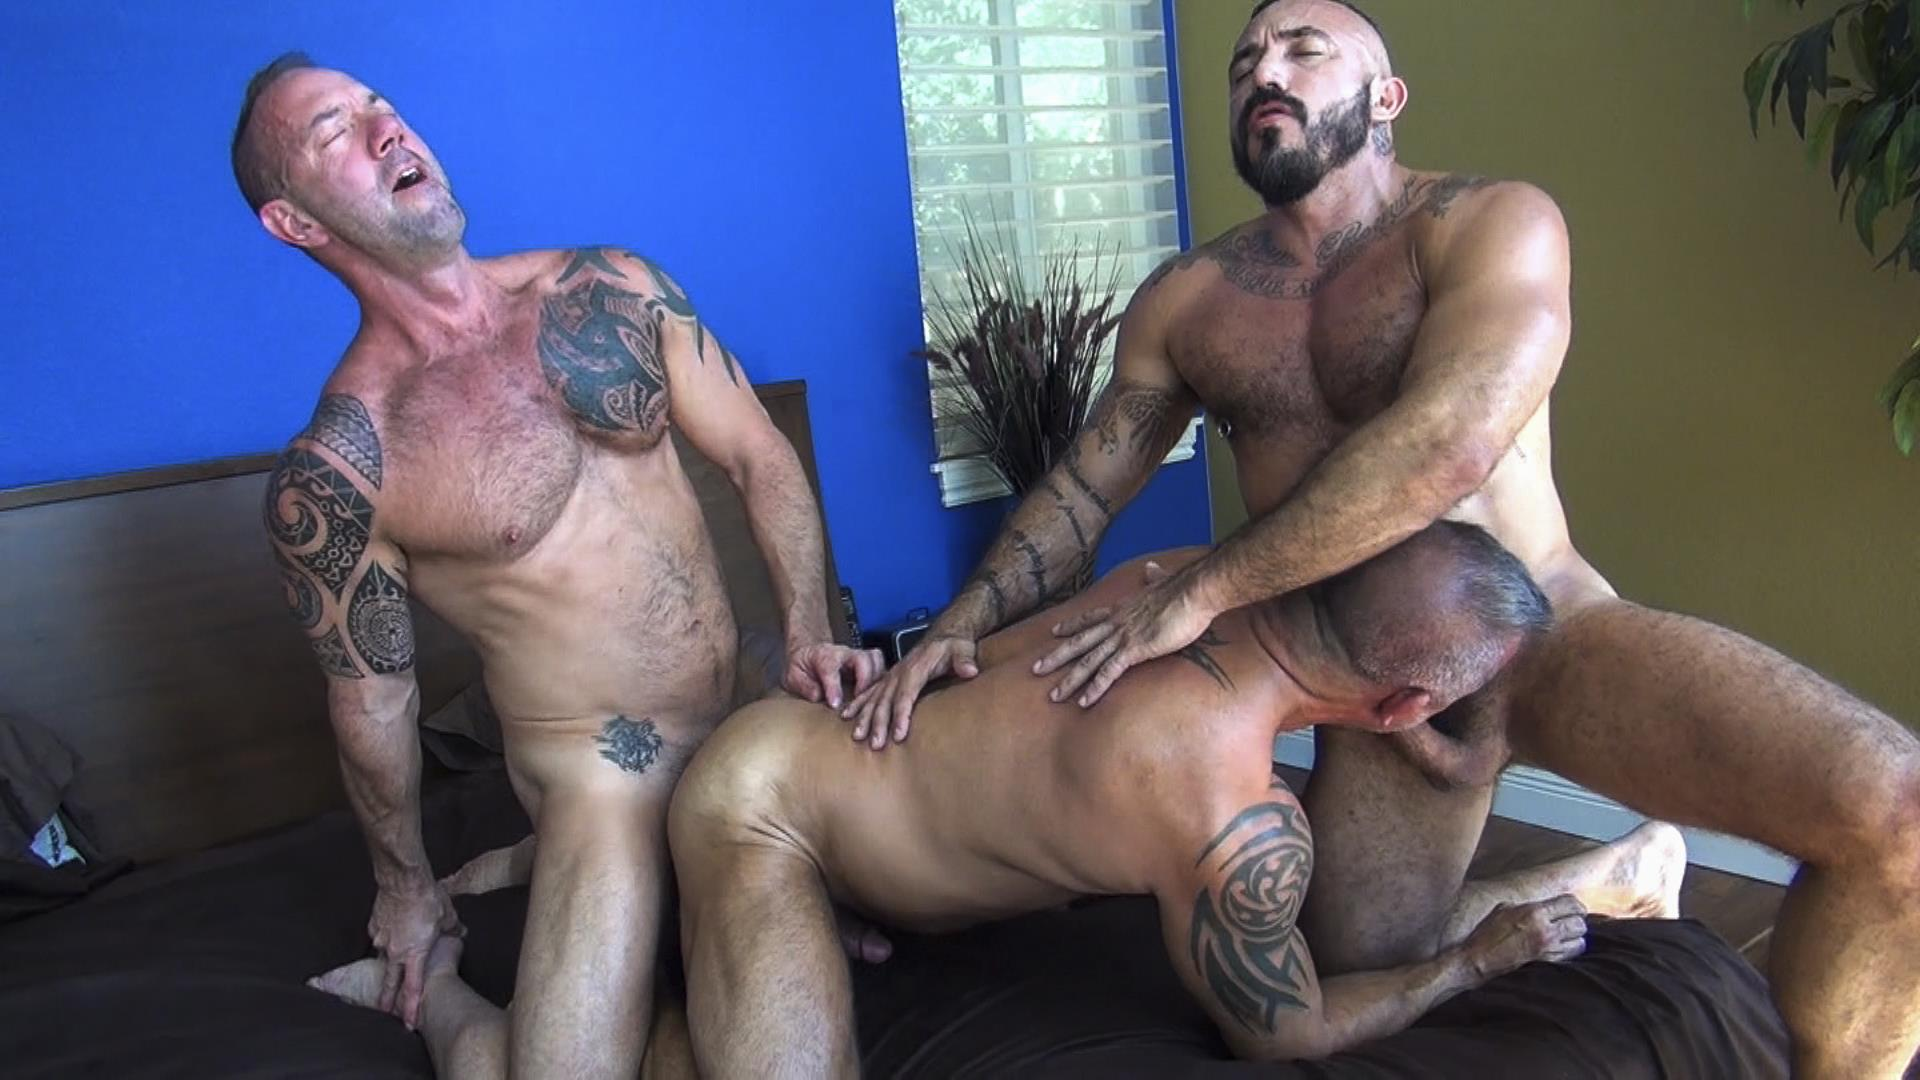 Raw Fuck Club Alessio Romero and Jon Galt and Vic Rocco Hairy Muscle Daddy Bareback Amateur Gay Porn 3 Hairy Muscle Daddy Threeway Double Bareback Penetration